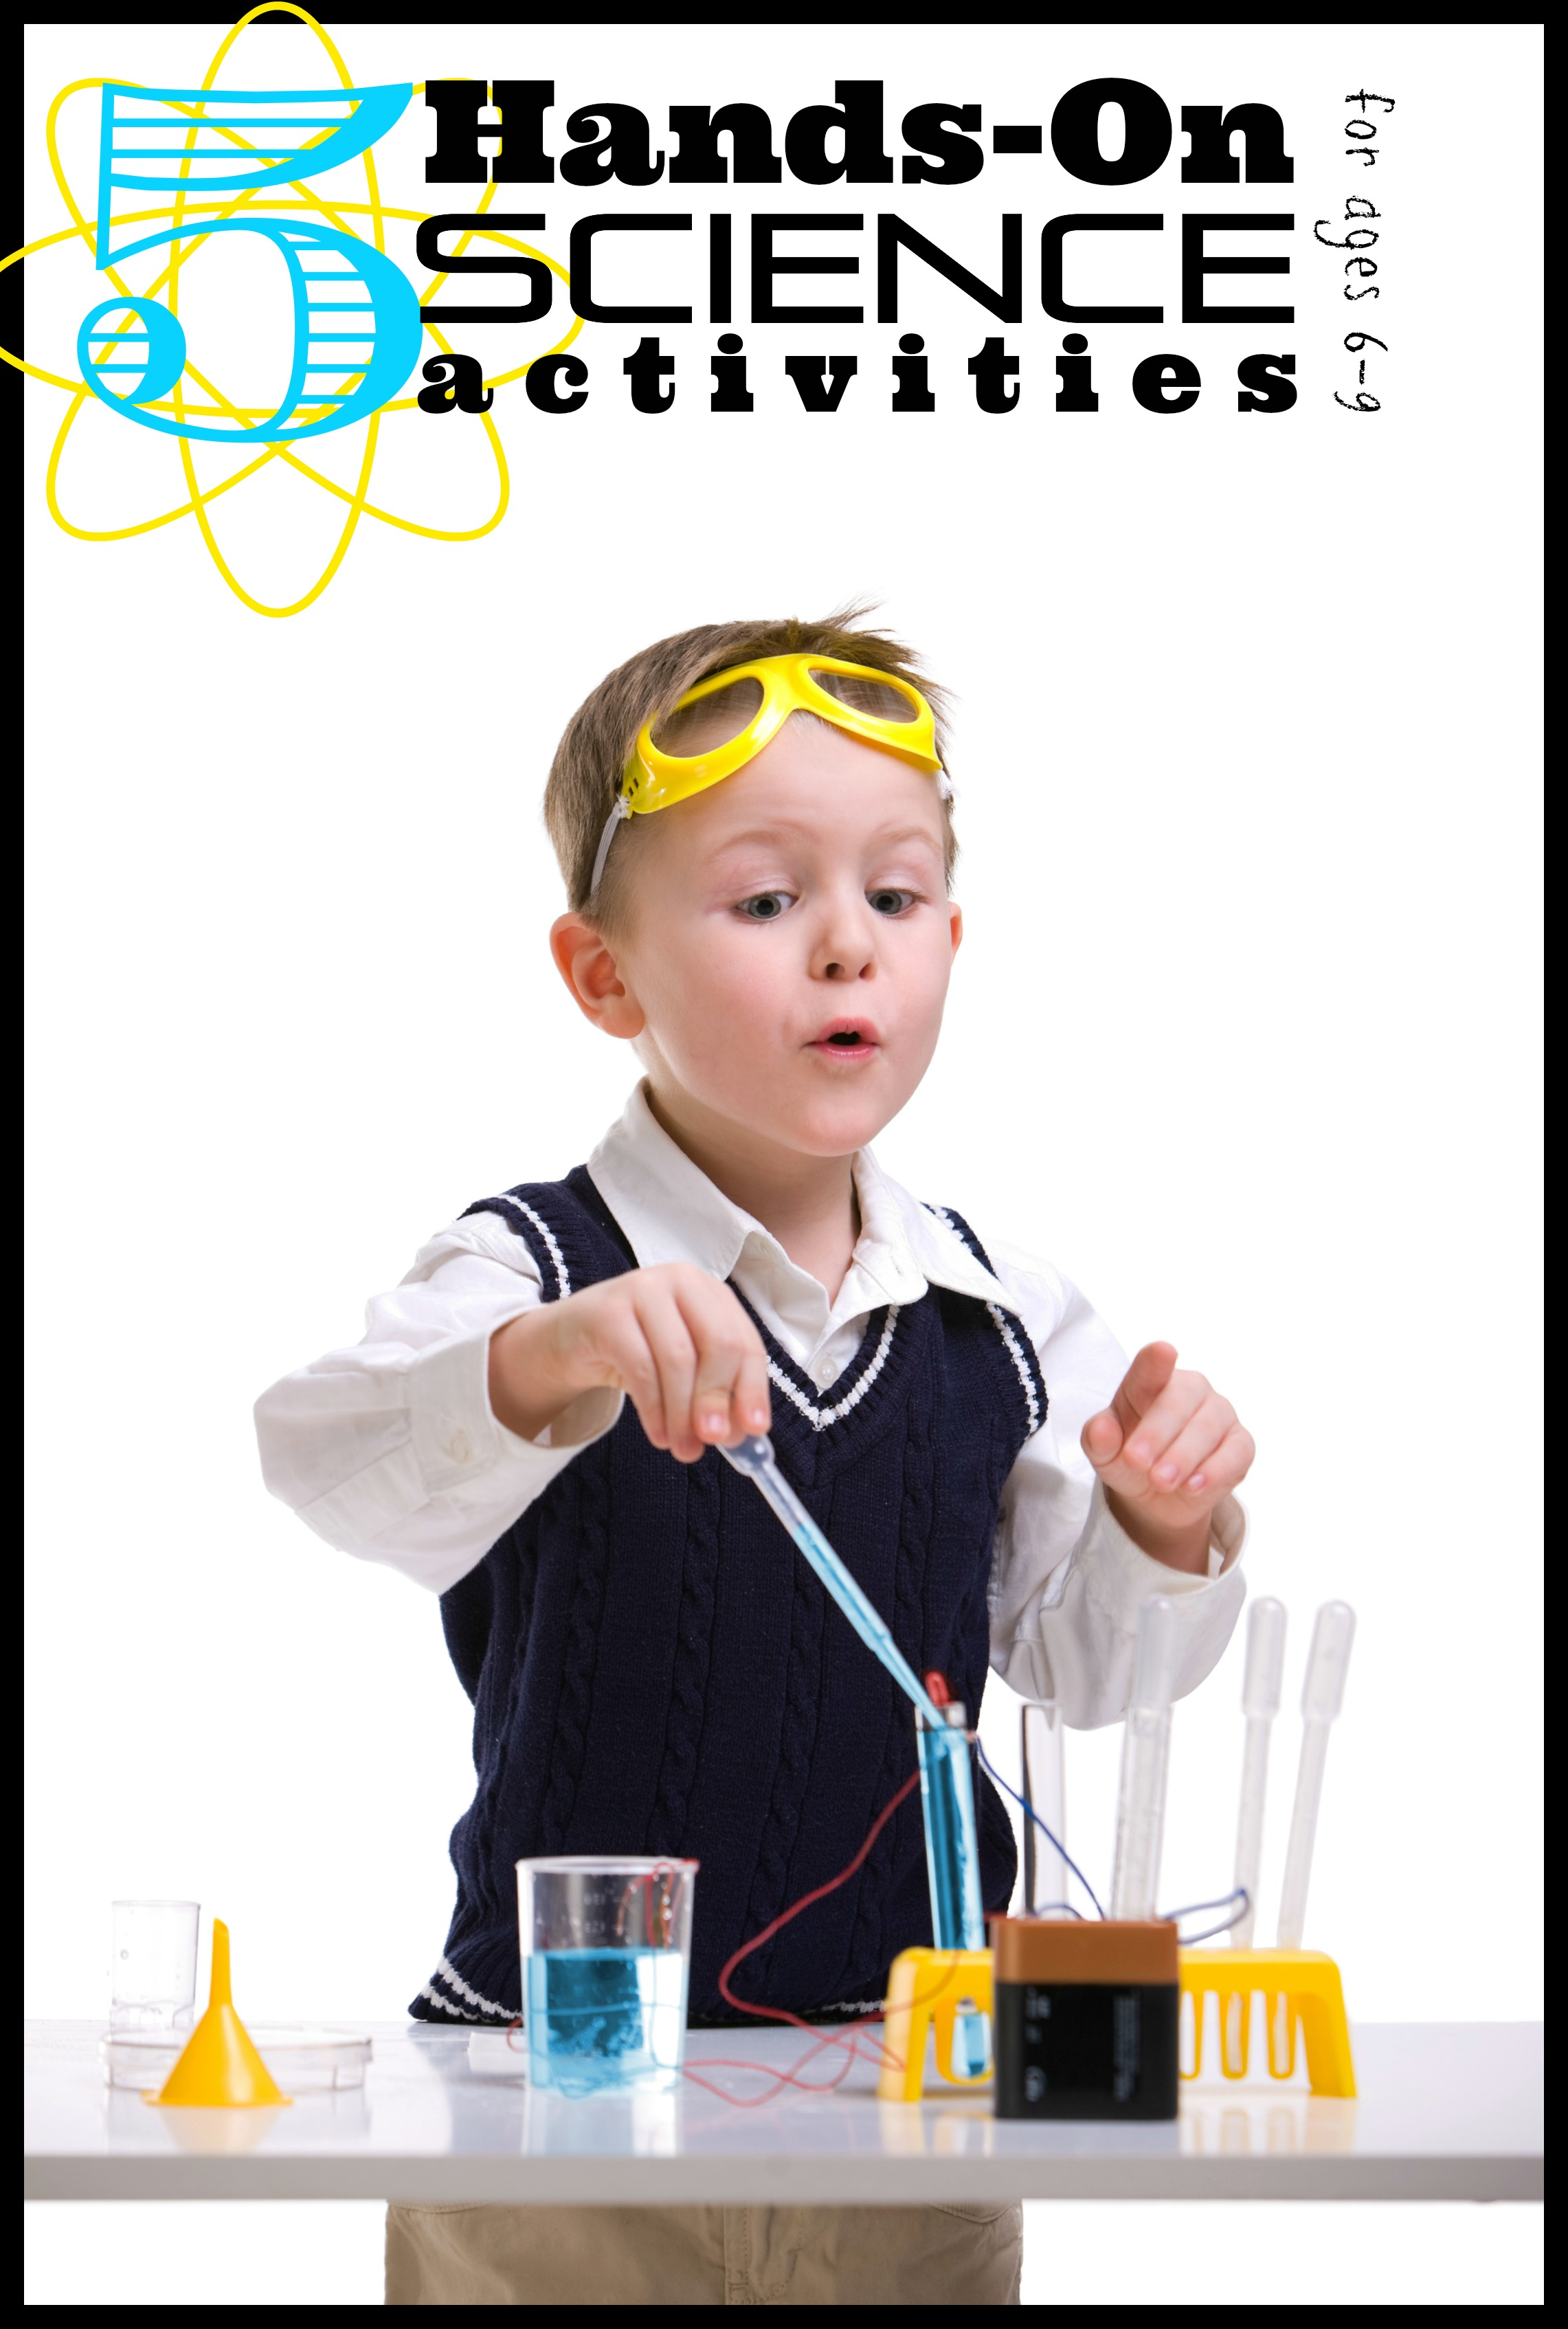 5 Hands On Science Activities For 6 9 Year Olds Tipsaholic